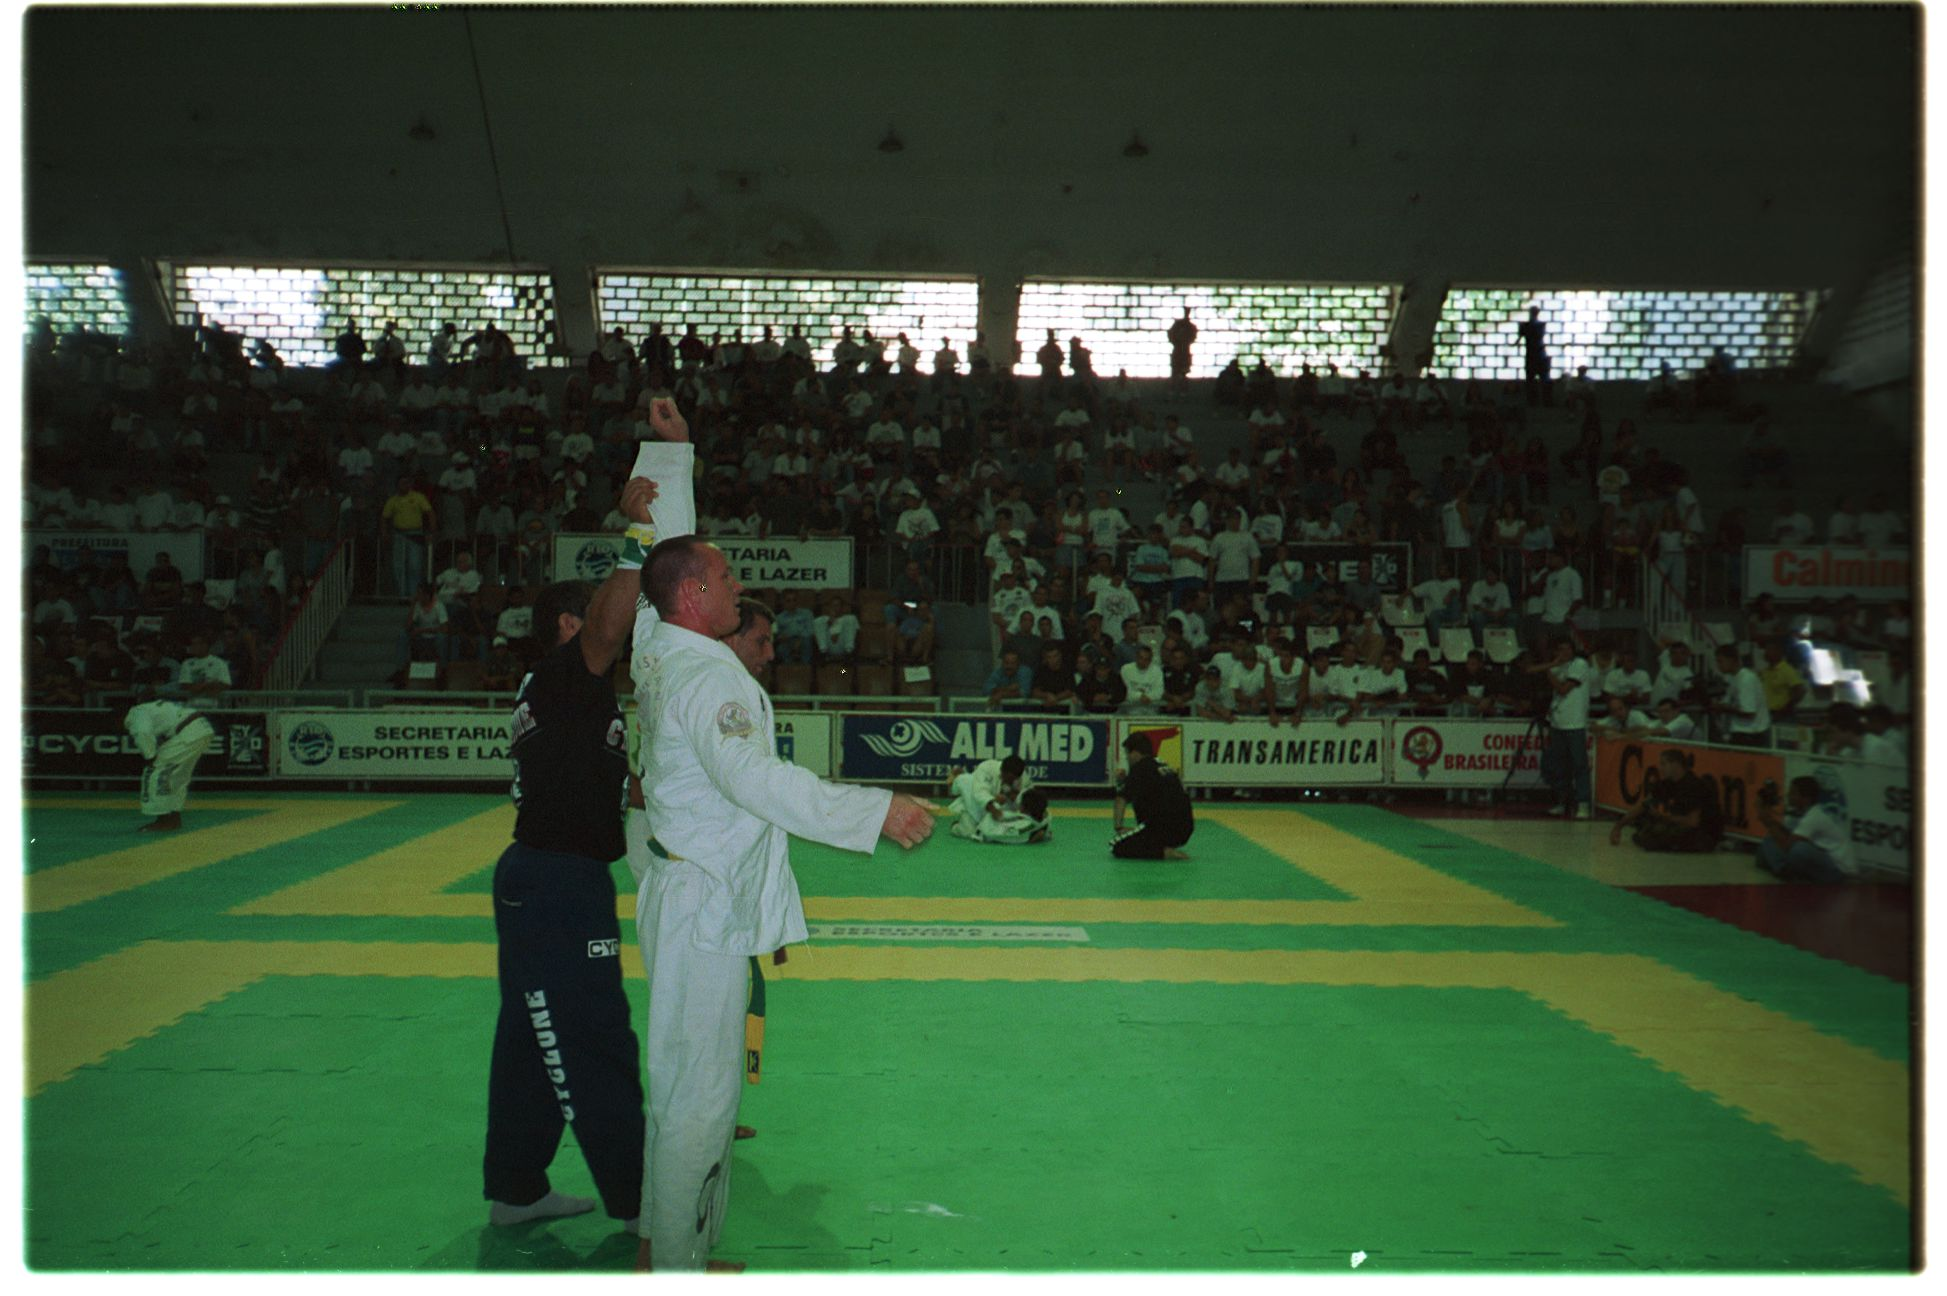 Pete winning world championships 1997 .JPG